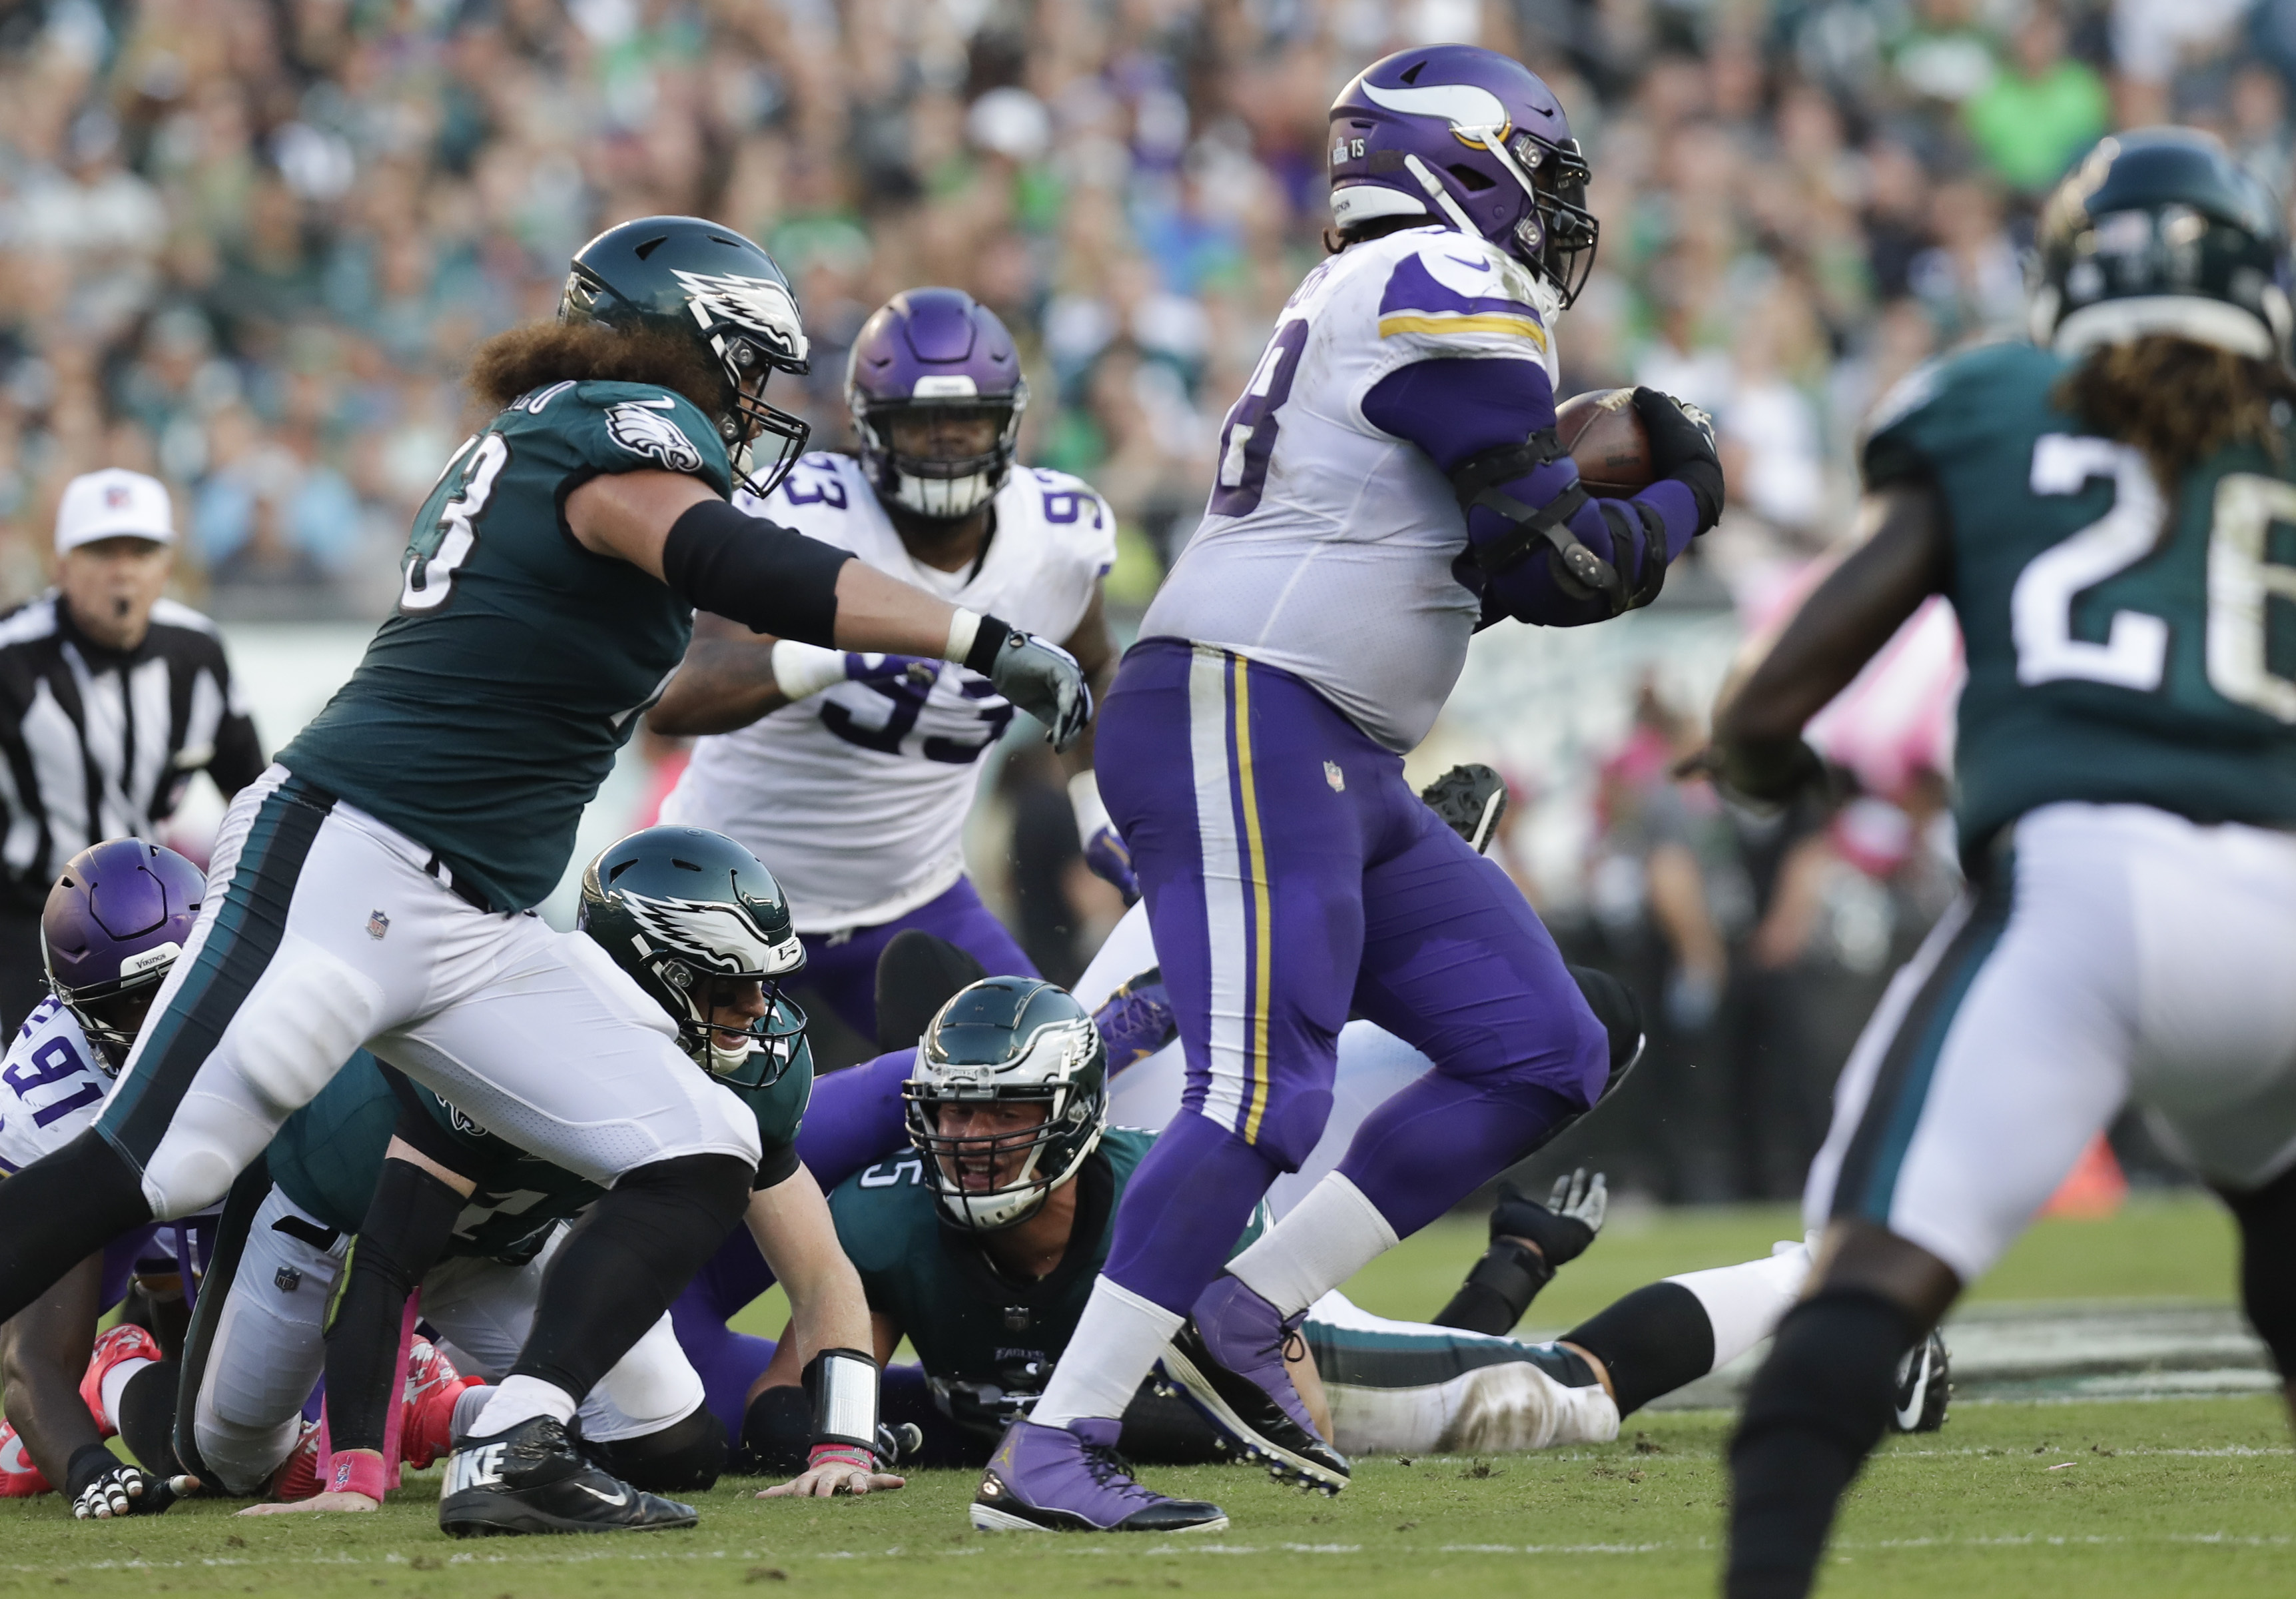 The Vikings' Linval Joseph runs past the Eagles' Isaac Seumalo en route to a touchdown after recovering a Carson Wentz fumble.